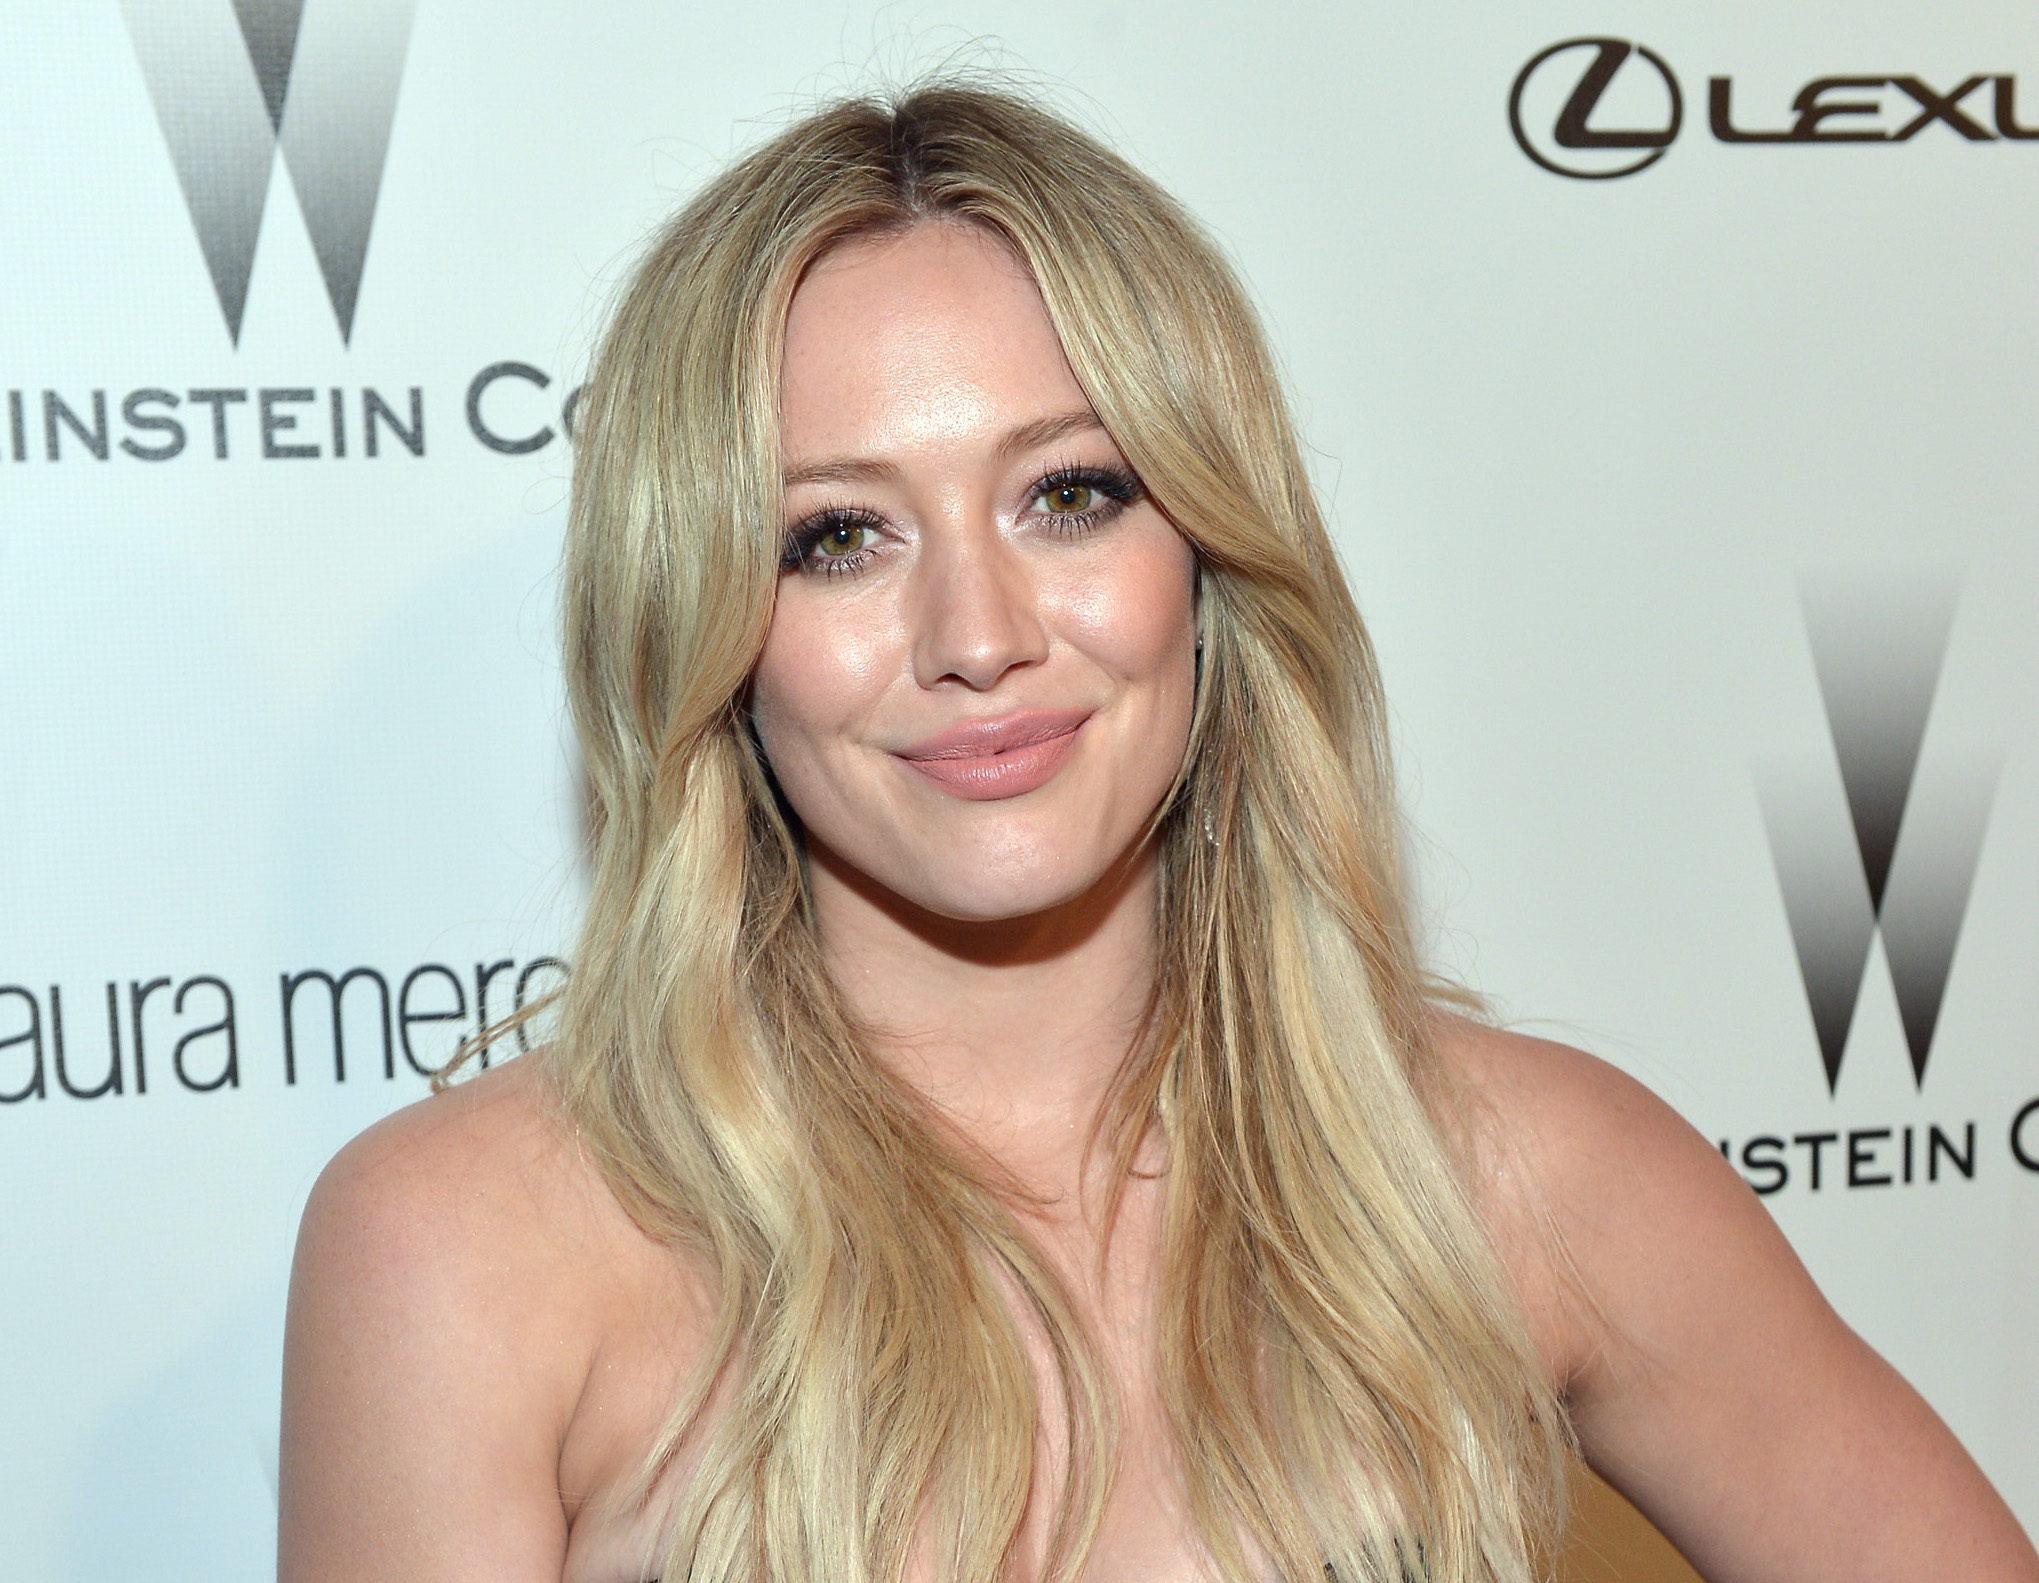 Hilary Duff rocks a brand new look and totally channels her inner space princess